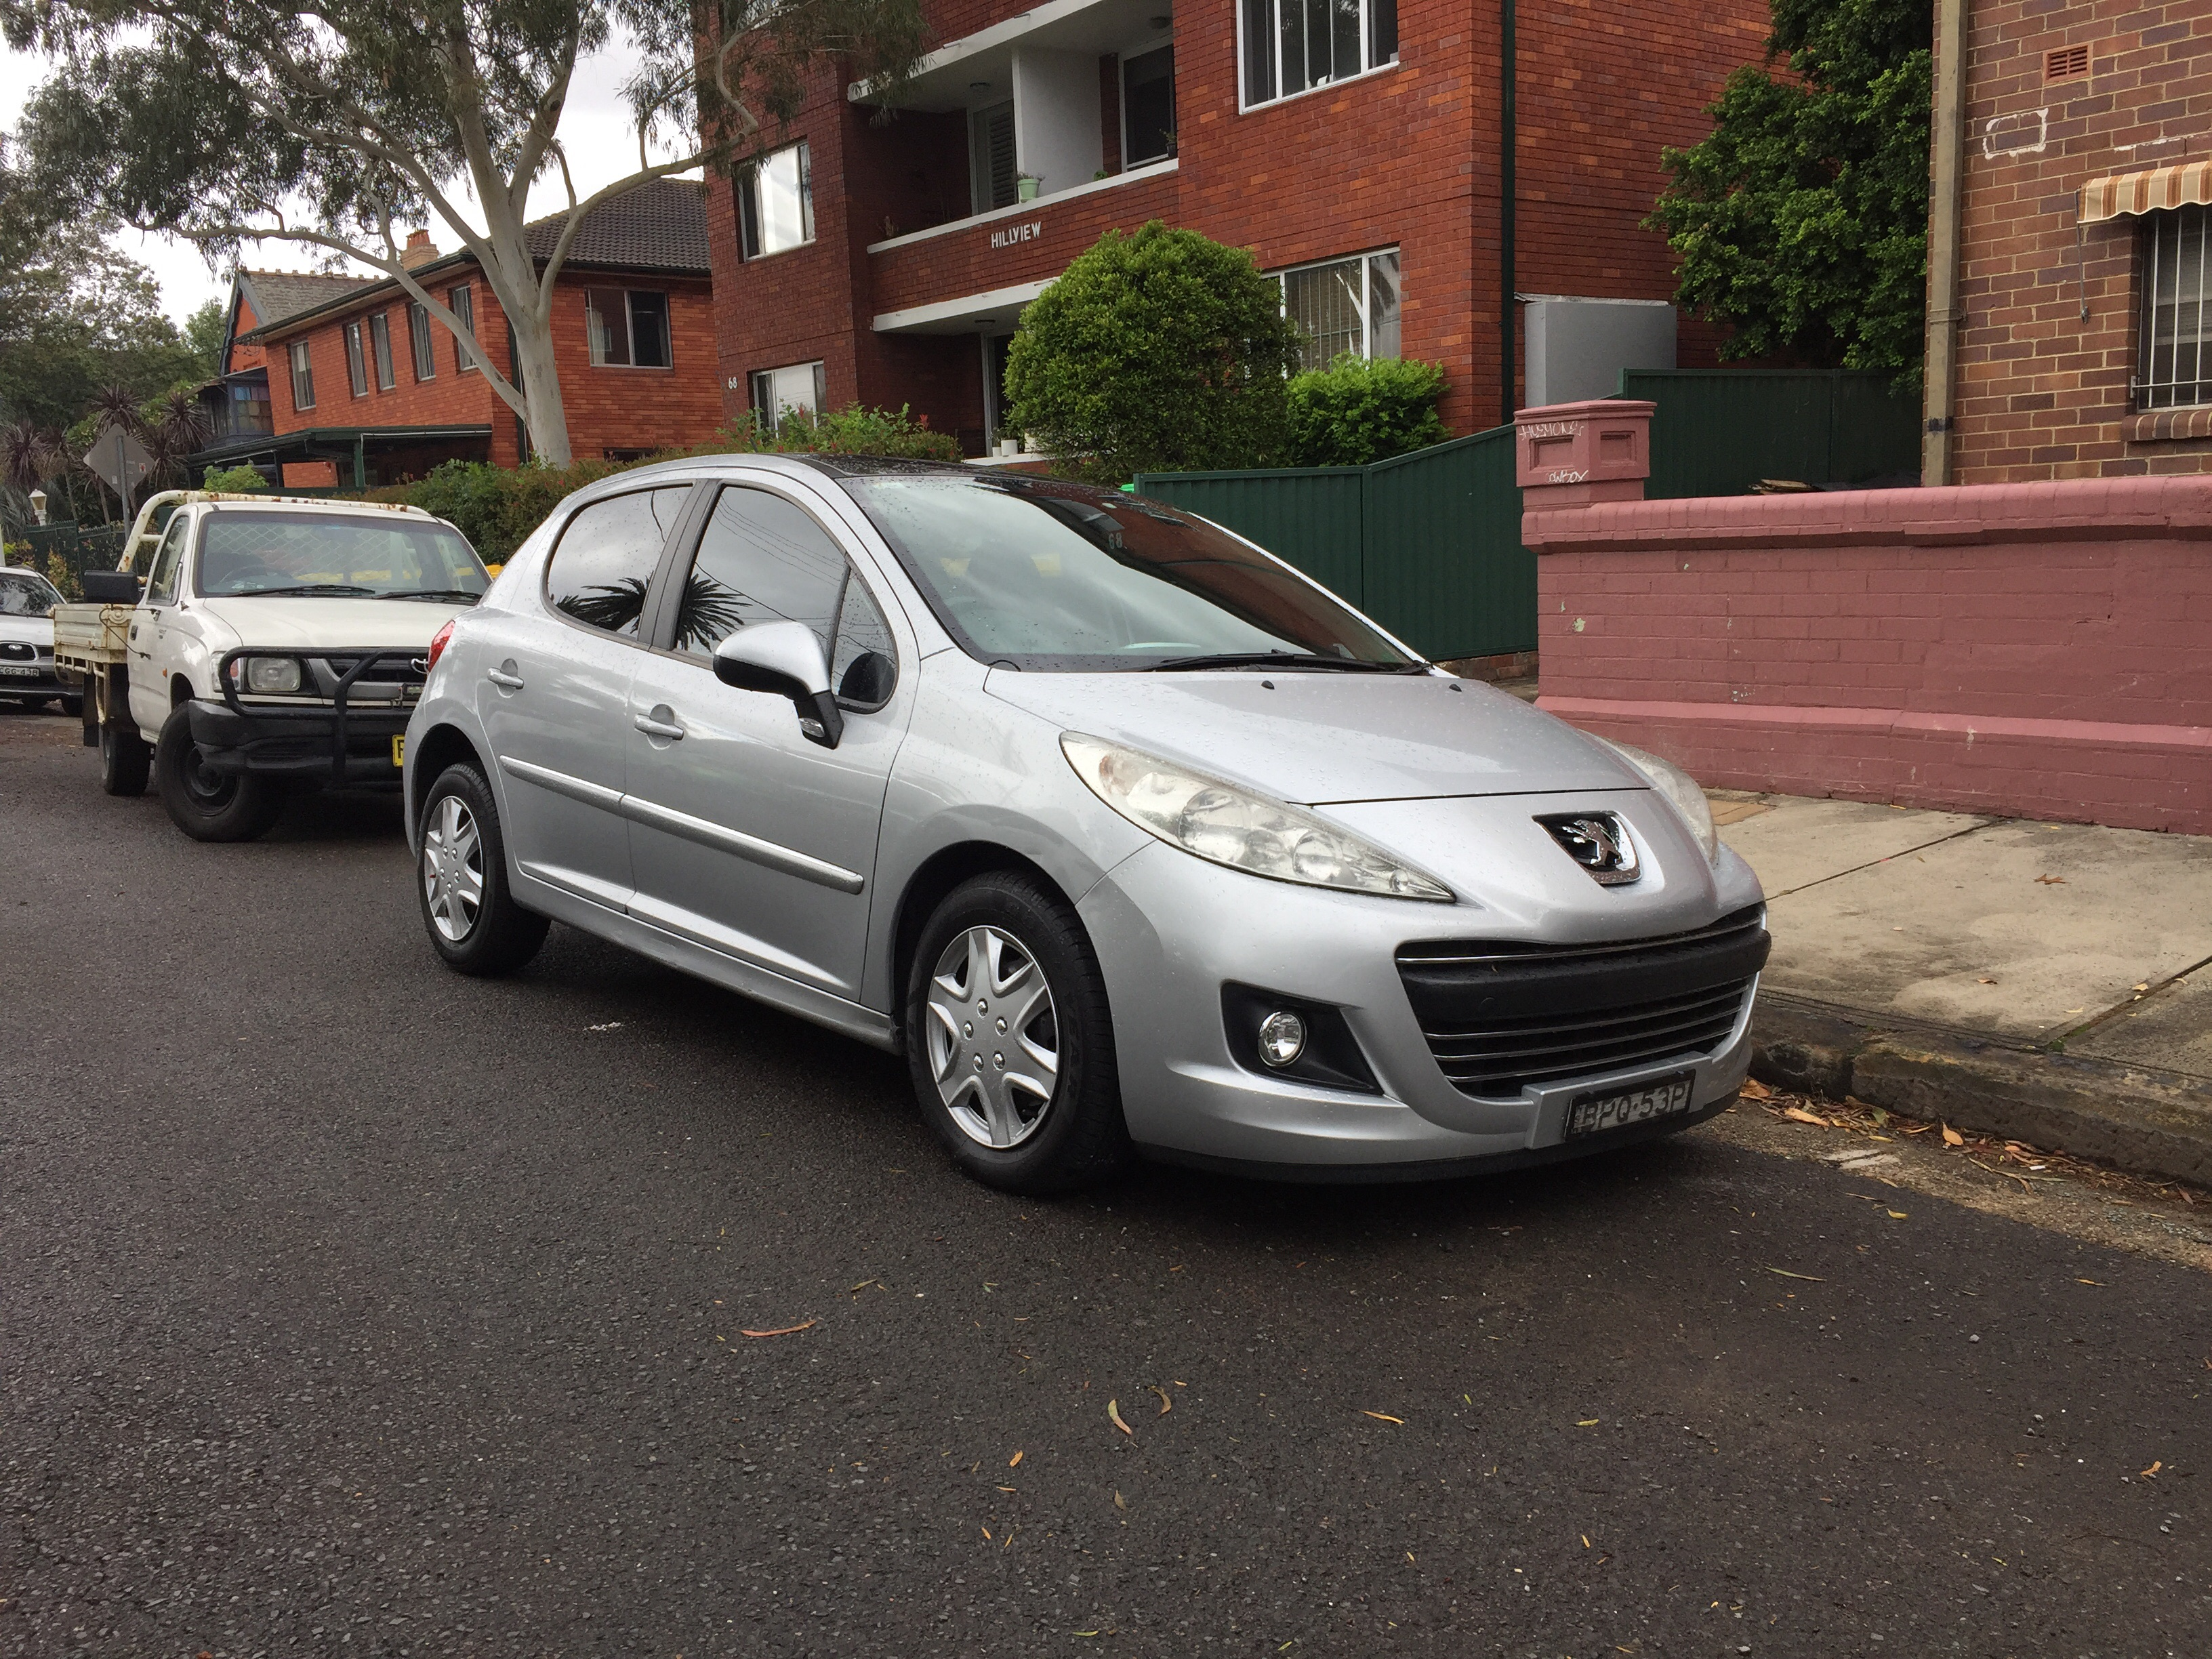 Picture of Don's 2010 Peugeot 207 A7